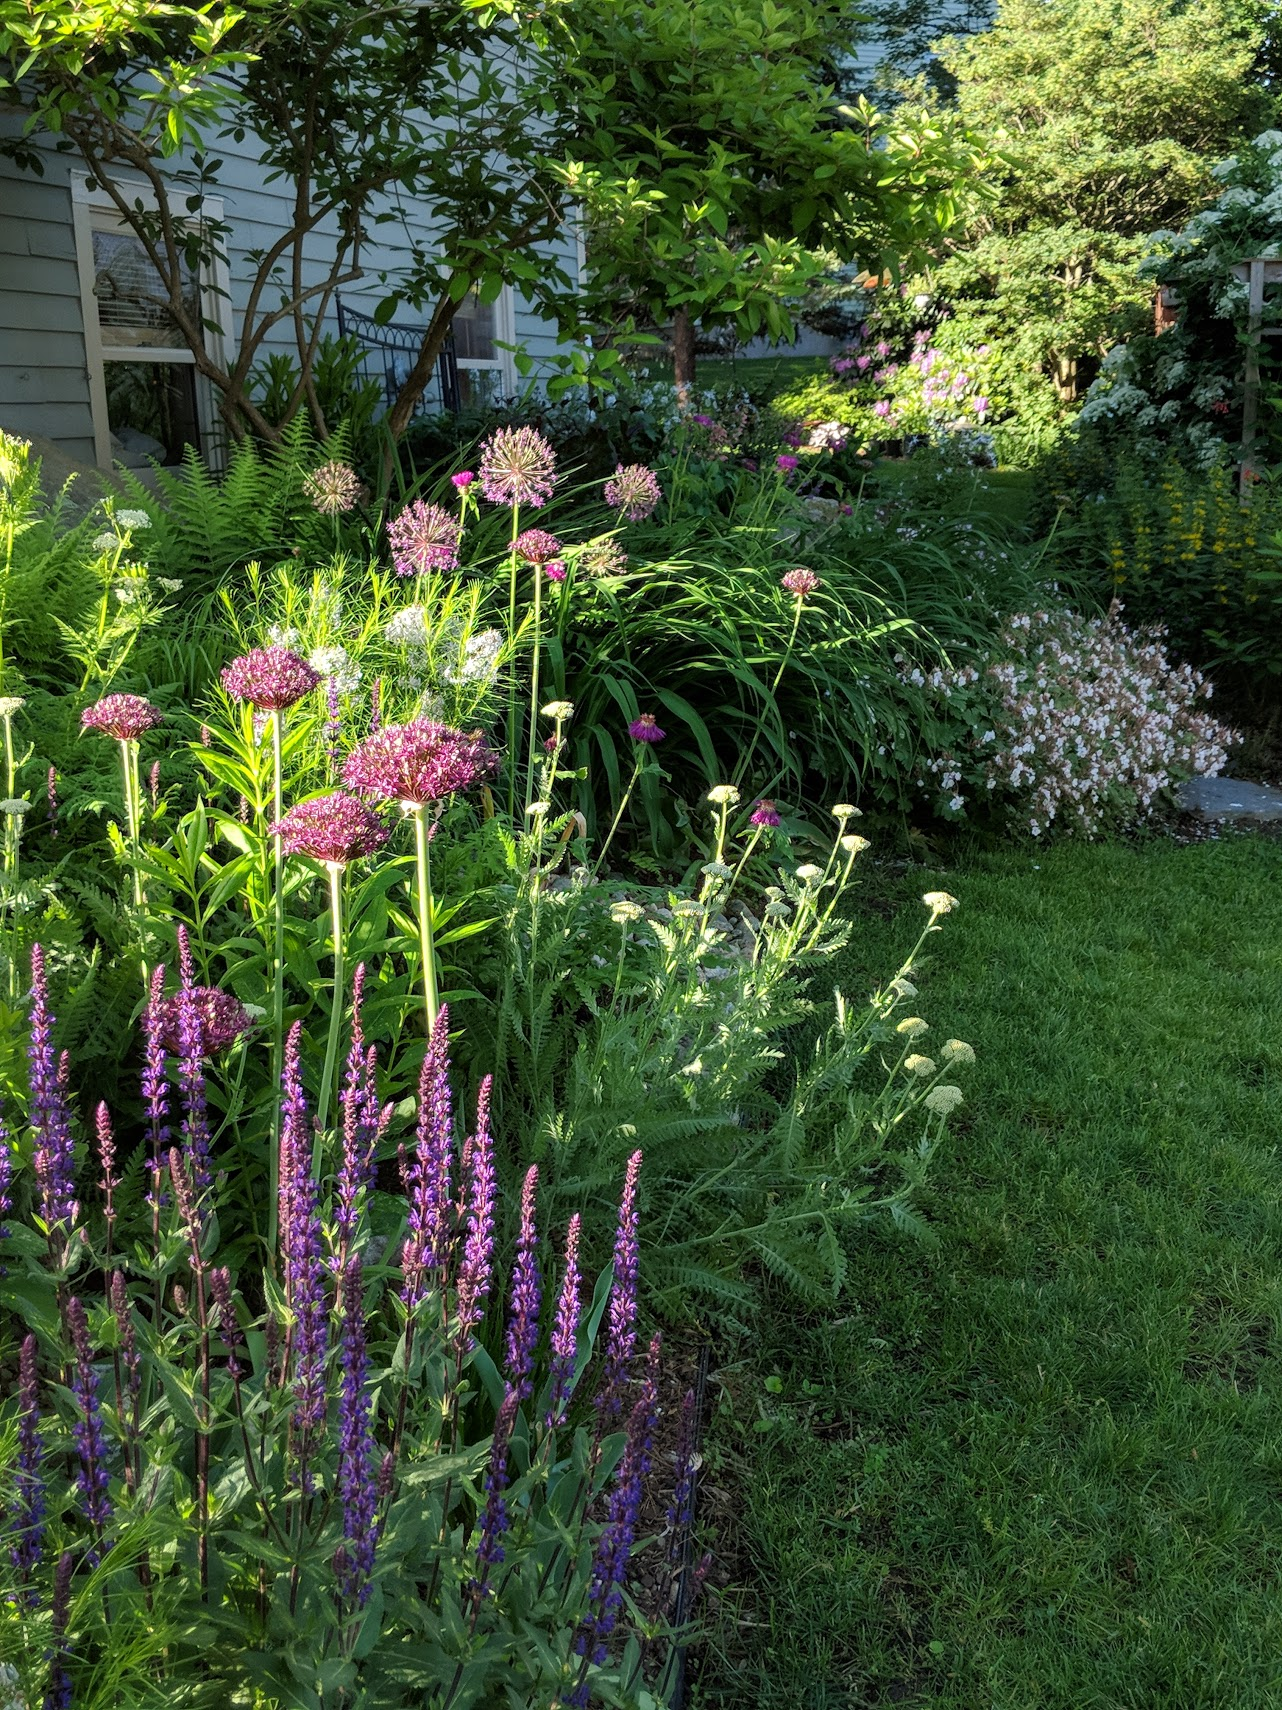 'Miami' allium (foreground) and 'Purple Sensation allium (behind) add interest and structure to this west facing perennial bed